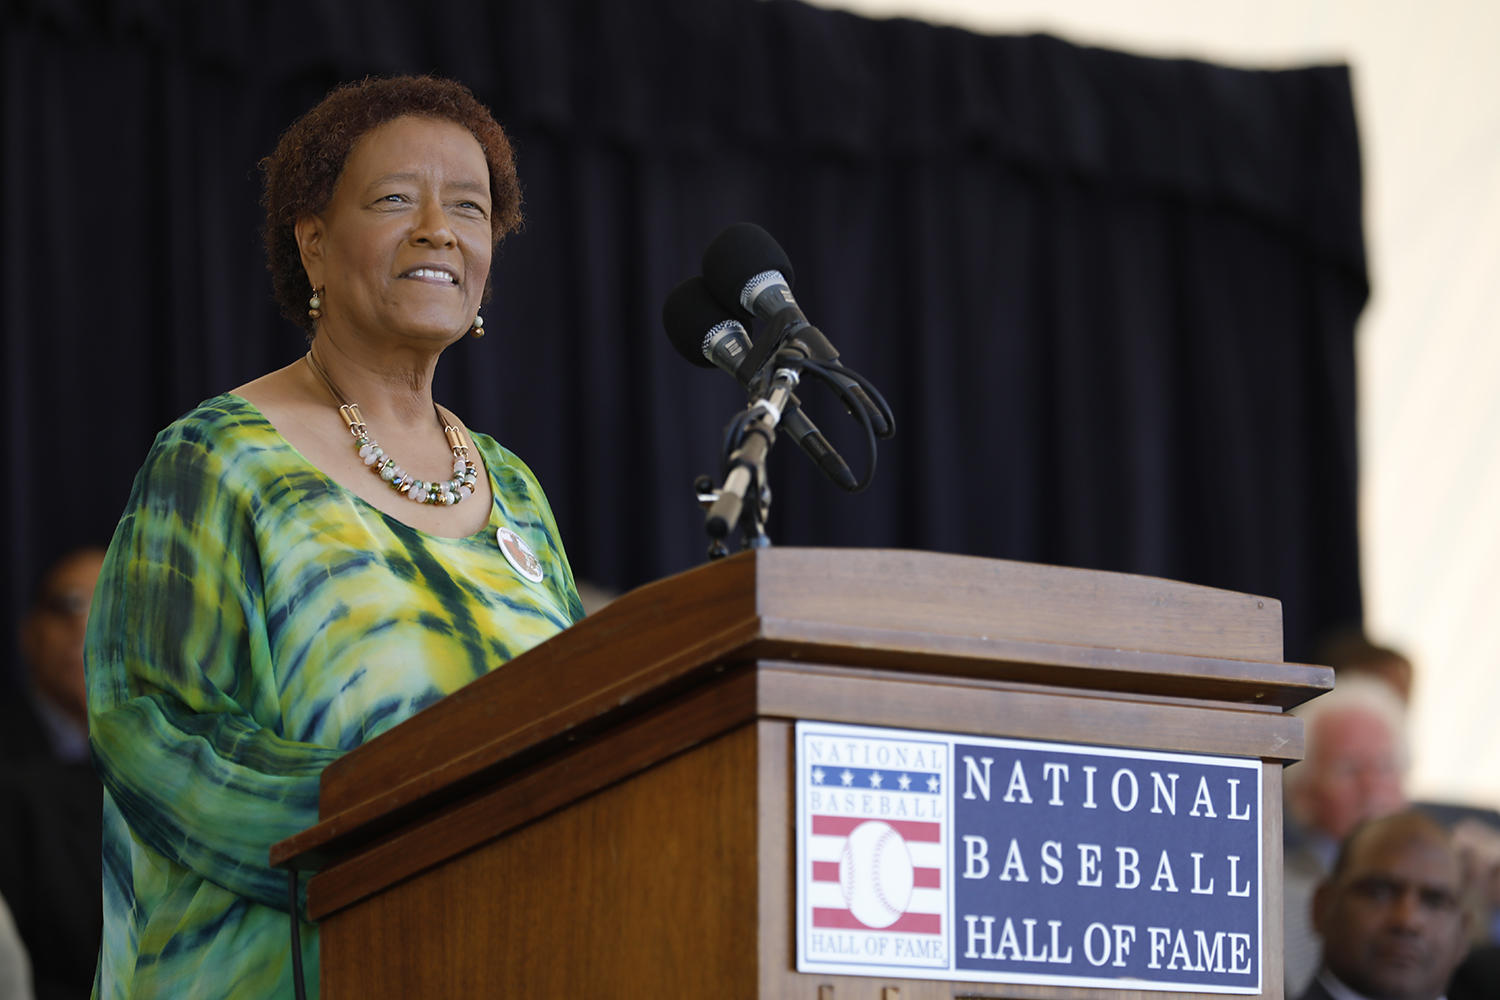 Claire Smith, pictured above, accepts the 2017 J.G. Taylor Spink Award at Saturday's <em>Awards Presentation</em>. (Milo Stewart Jr. / National Baseball Hall of Fame and Museum)